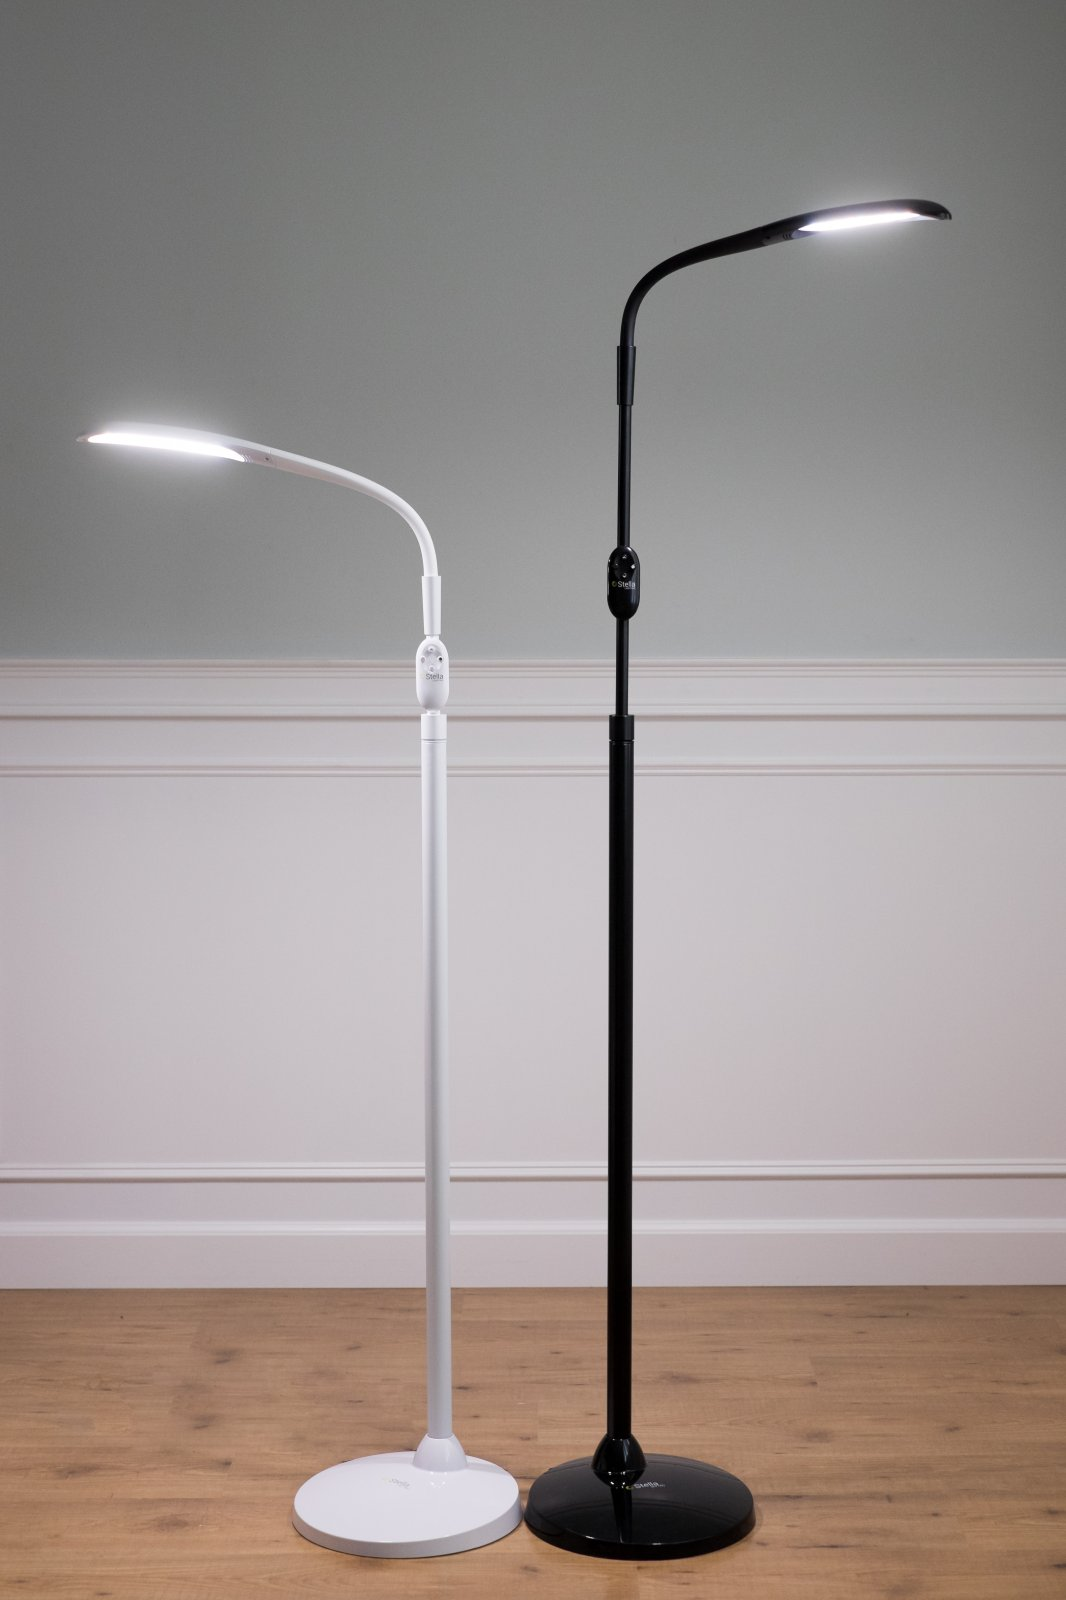 Stella Sky 2 - LED Floor Lamp